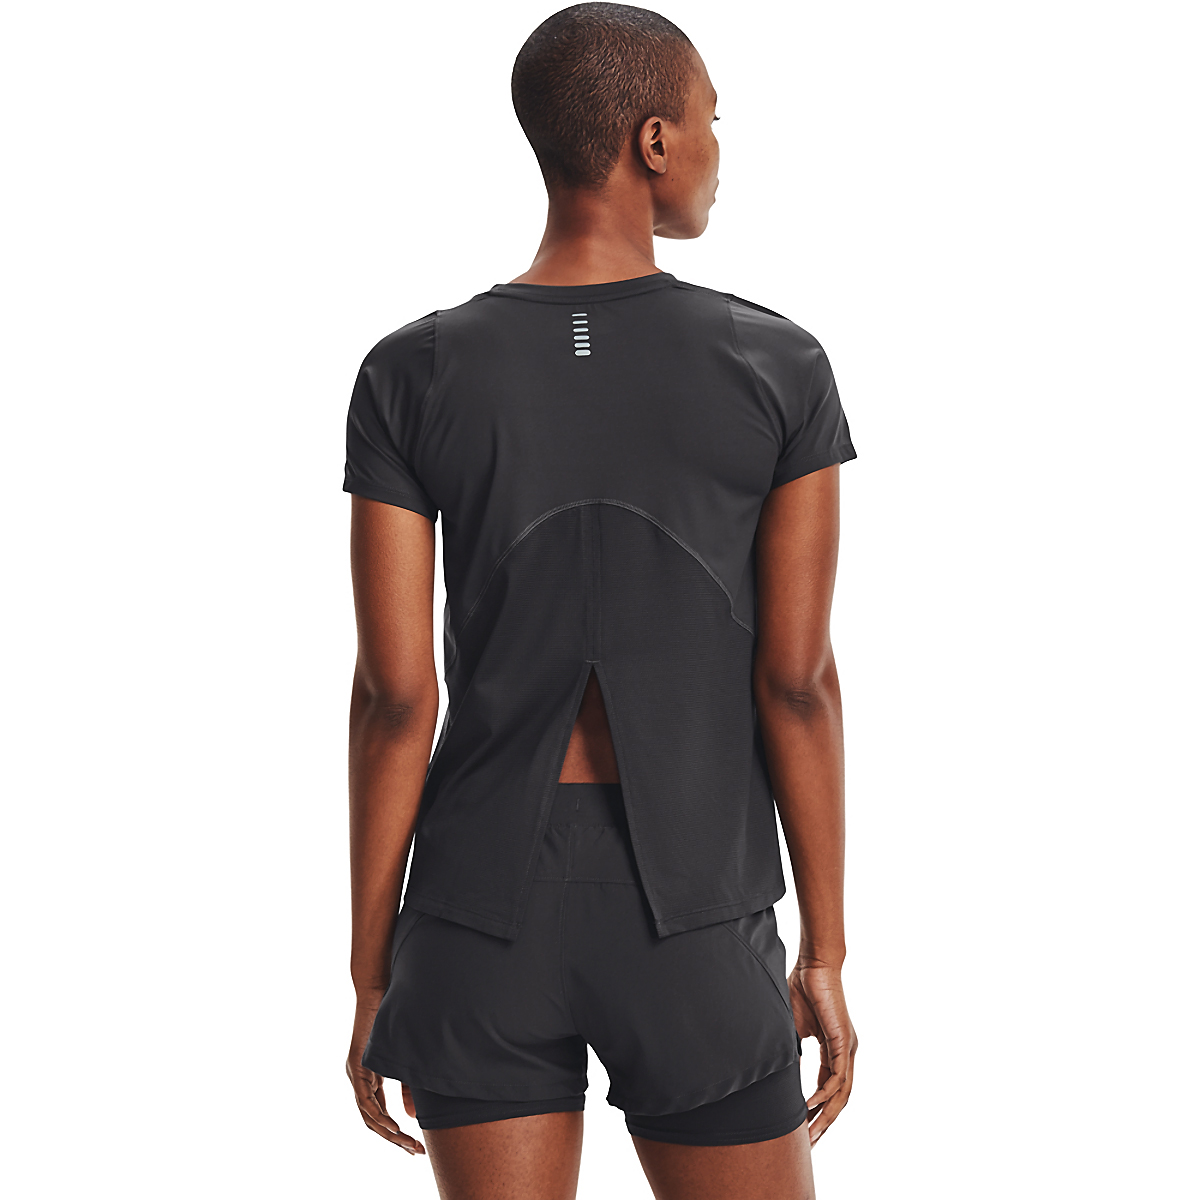 Women's Under Armour Iso-Chill Run Short Sleeve Tee - Color: Jet Gray/Jet Gray/Halo Gray - Size: XS, Jet Gray/Jet Gray/Halo Gray, large, image 2